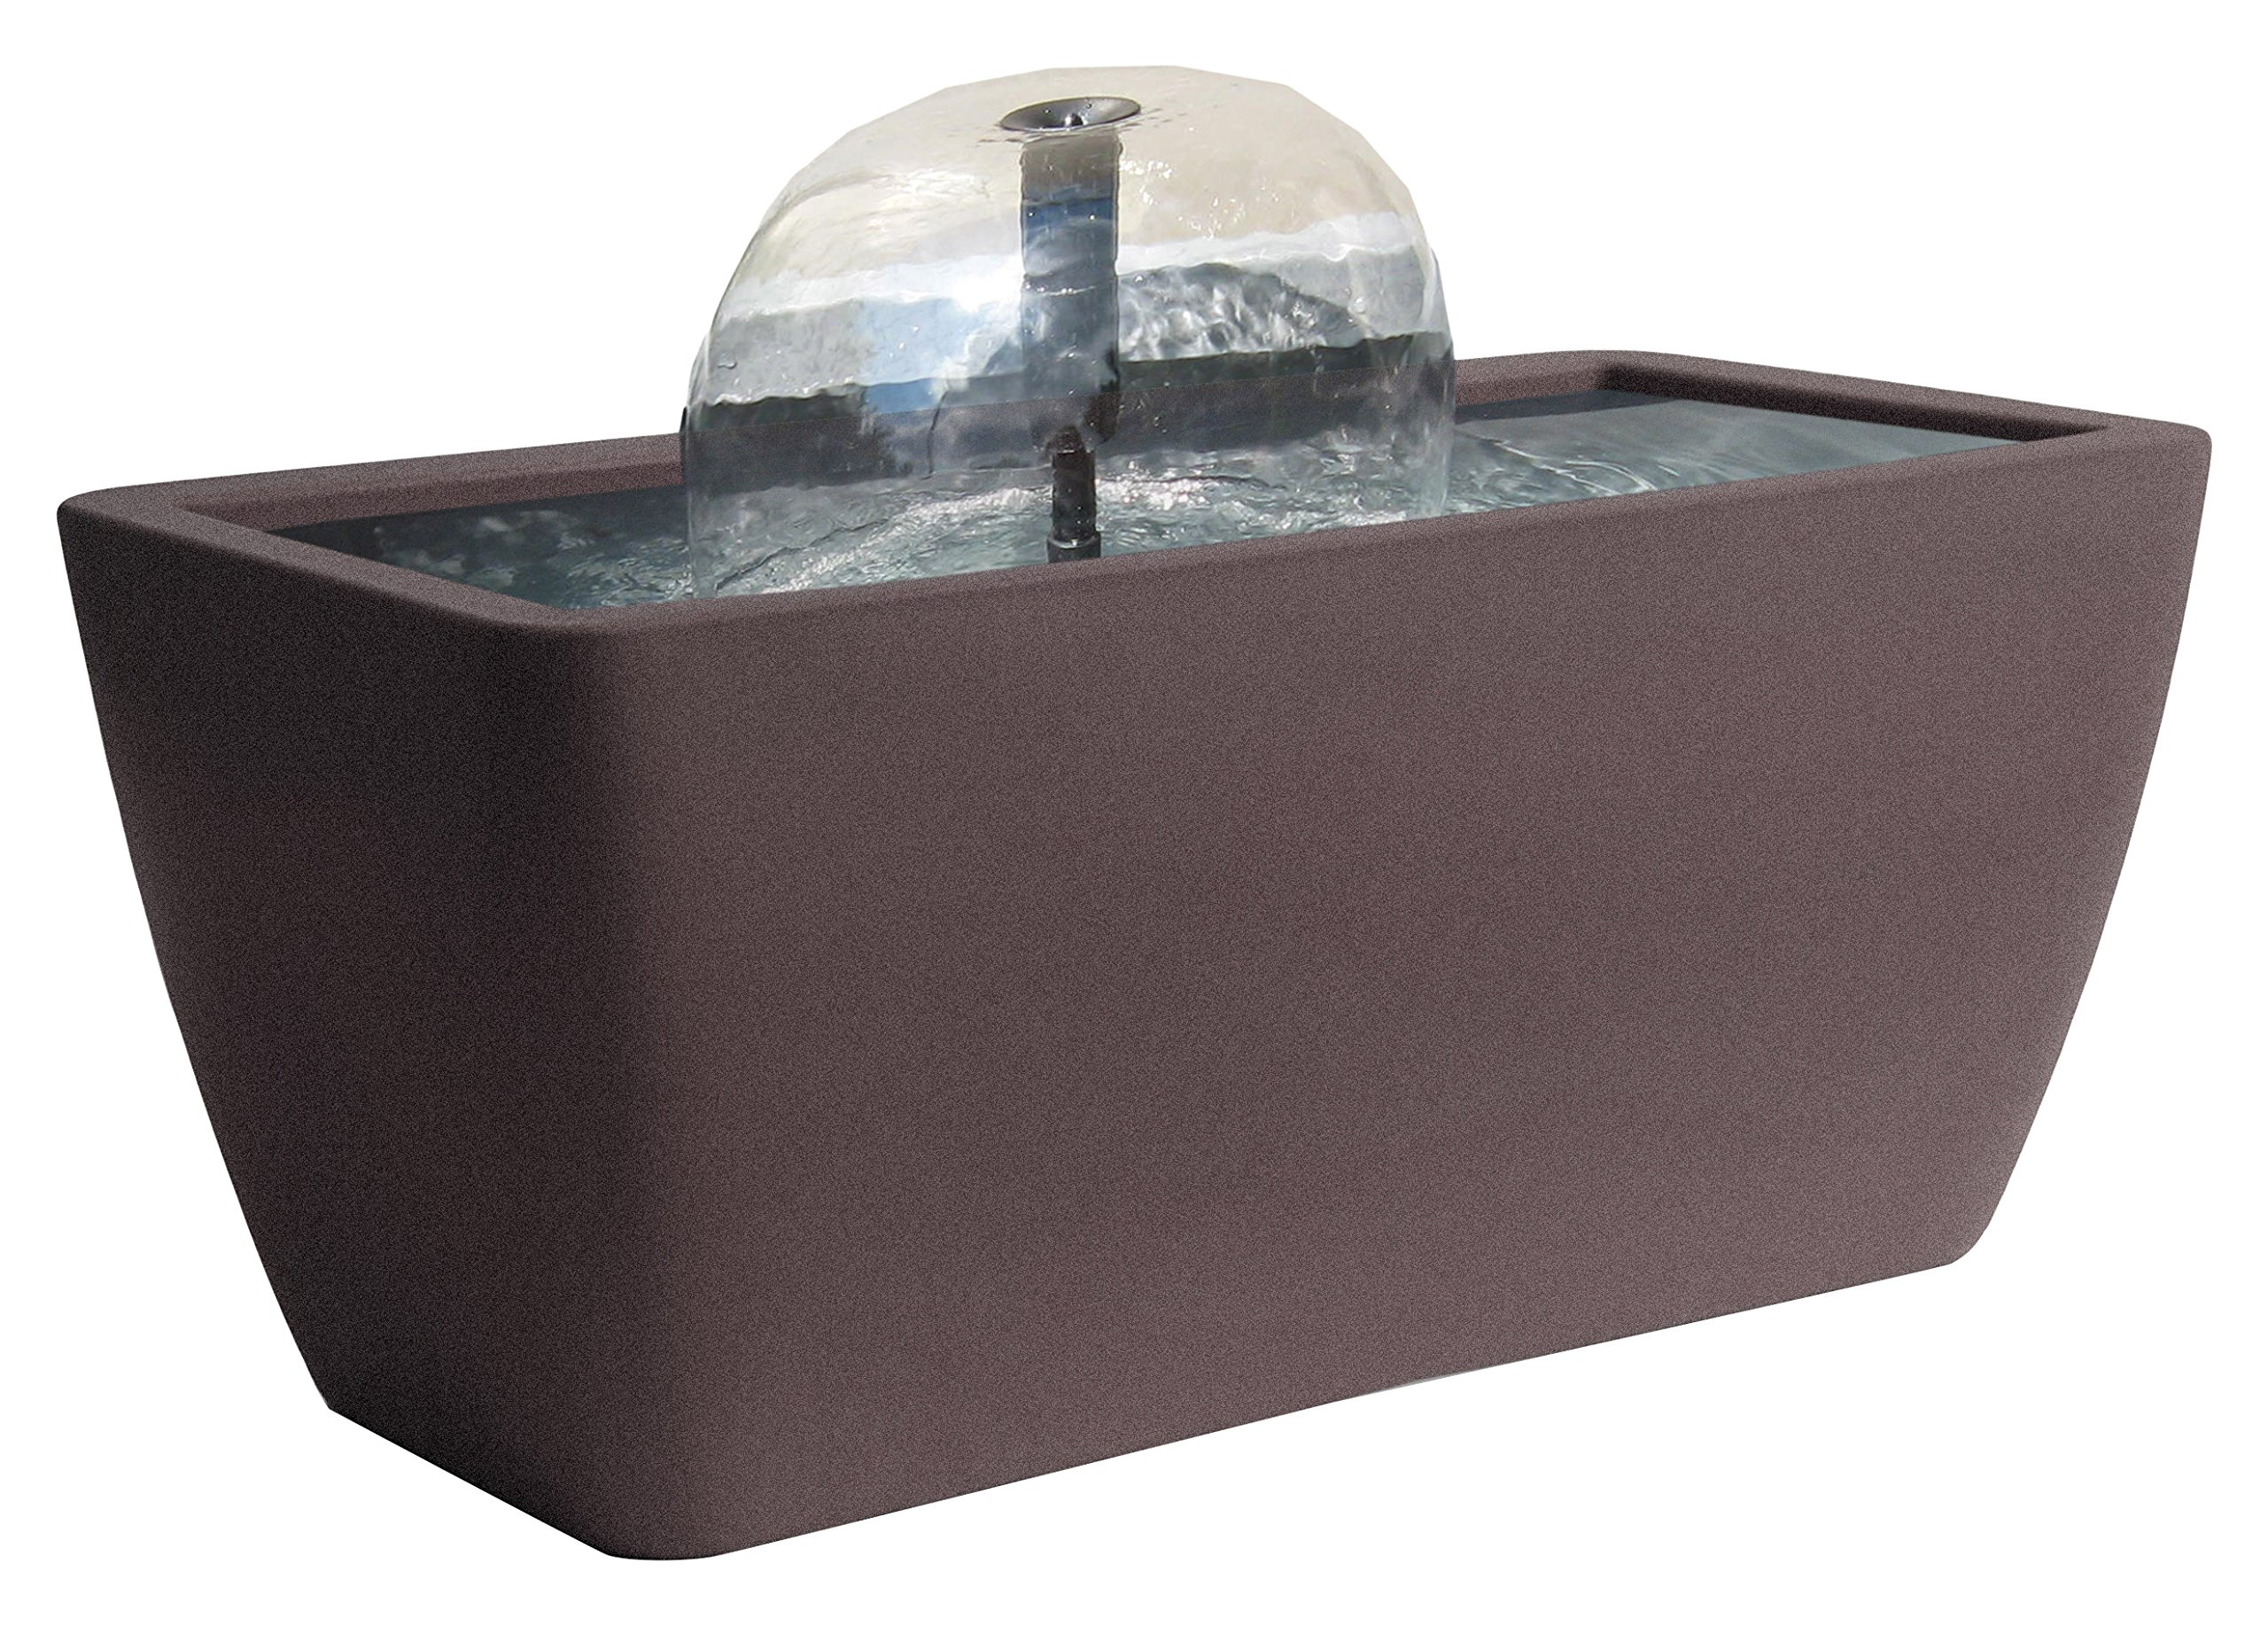 Algreen 36311 Manhattan Pond Kit Fountain with LED Light, Brownstone by Algreen